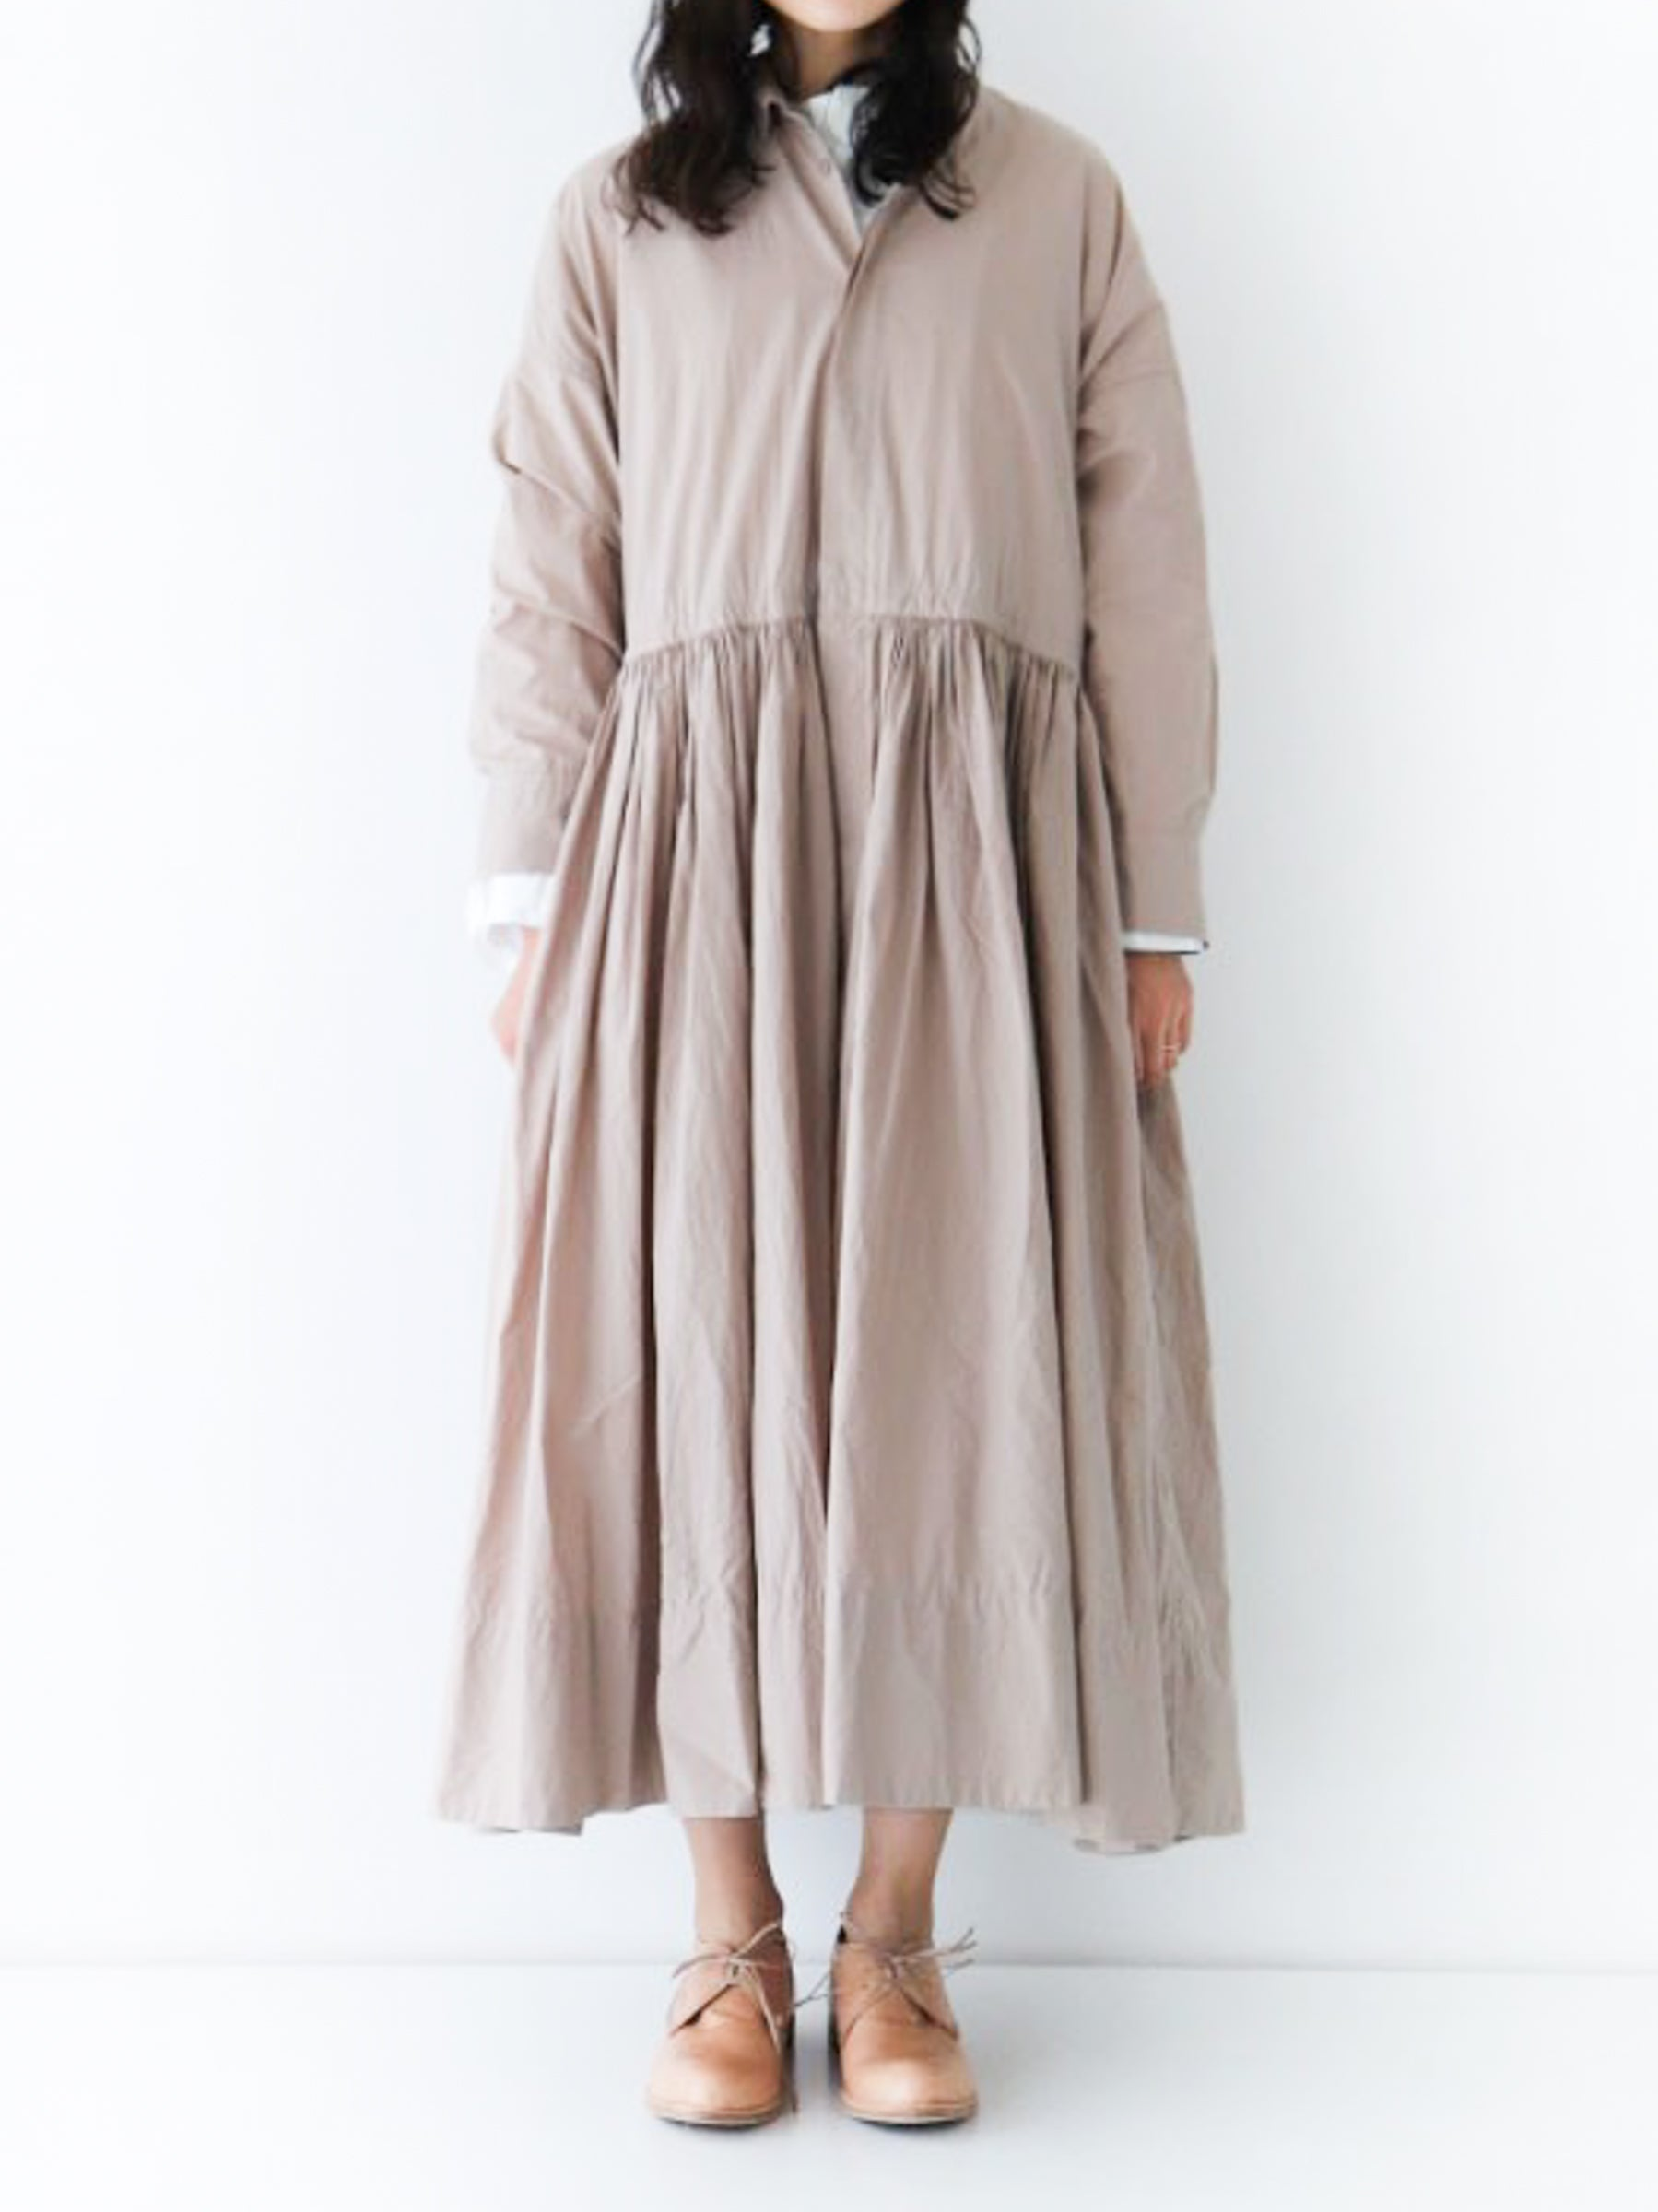 Gather Shirt Dress - Beige